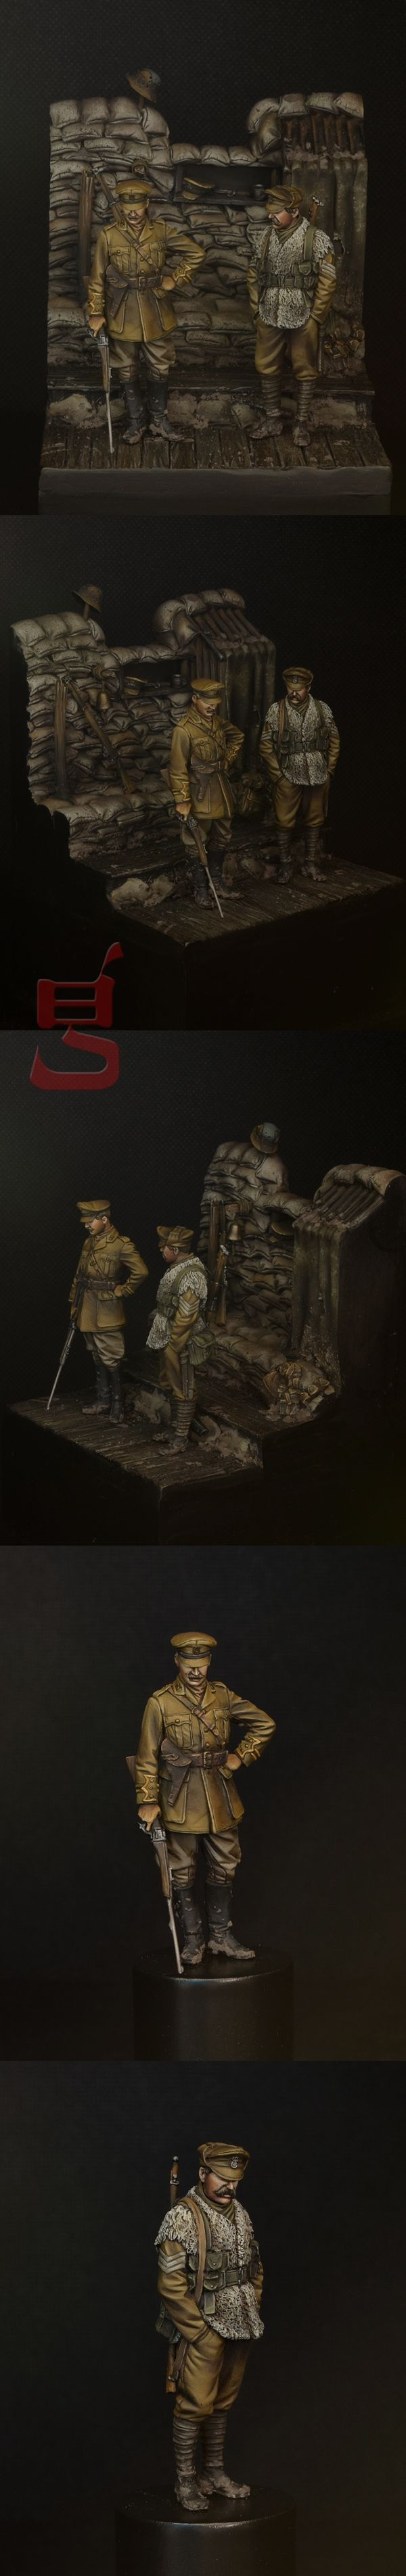 Completed - WWI Trench section, Ploegsteert Wood 1915 | planetFigure | Miniatures